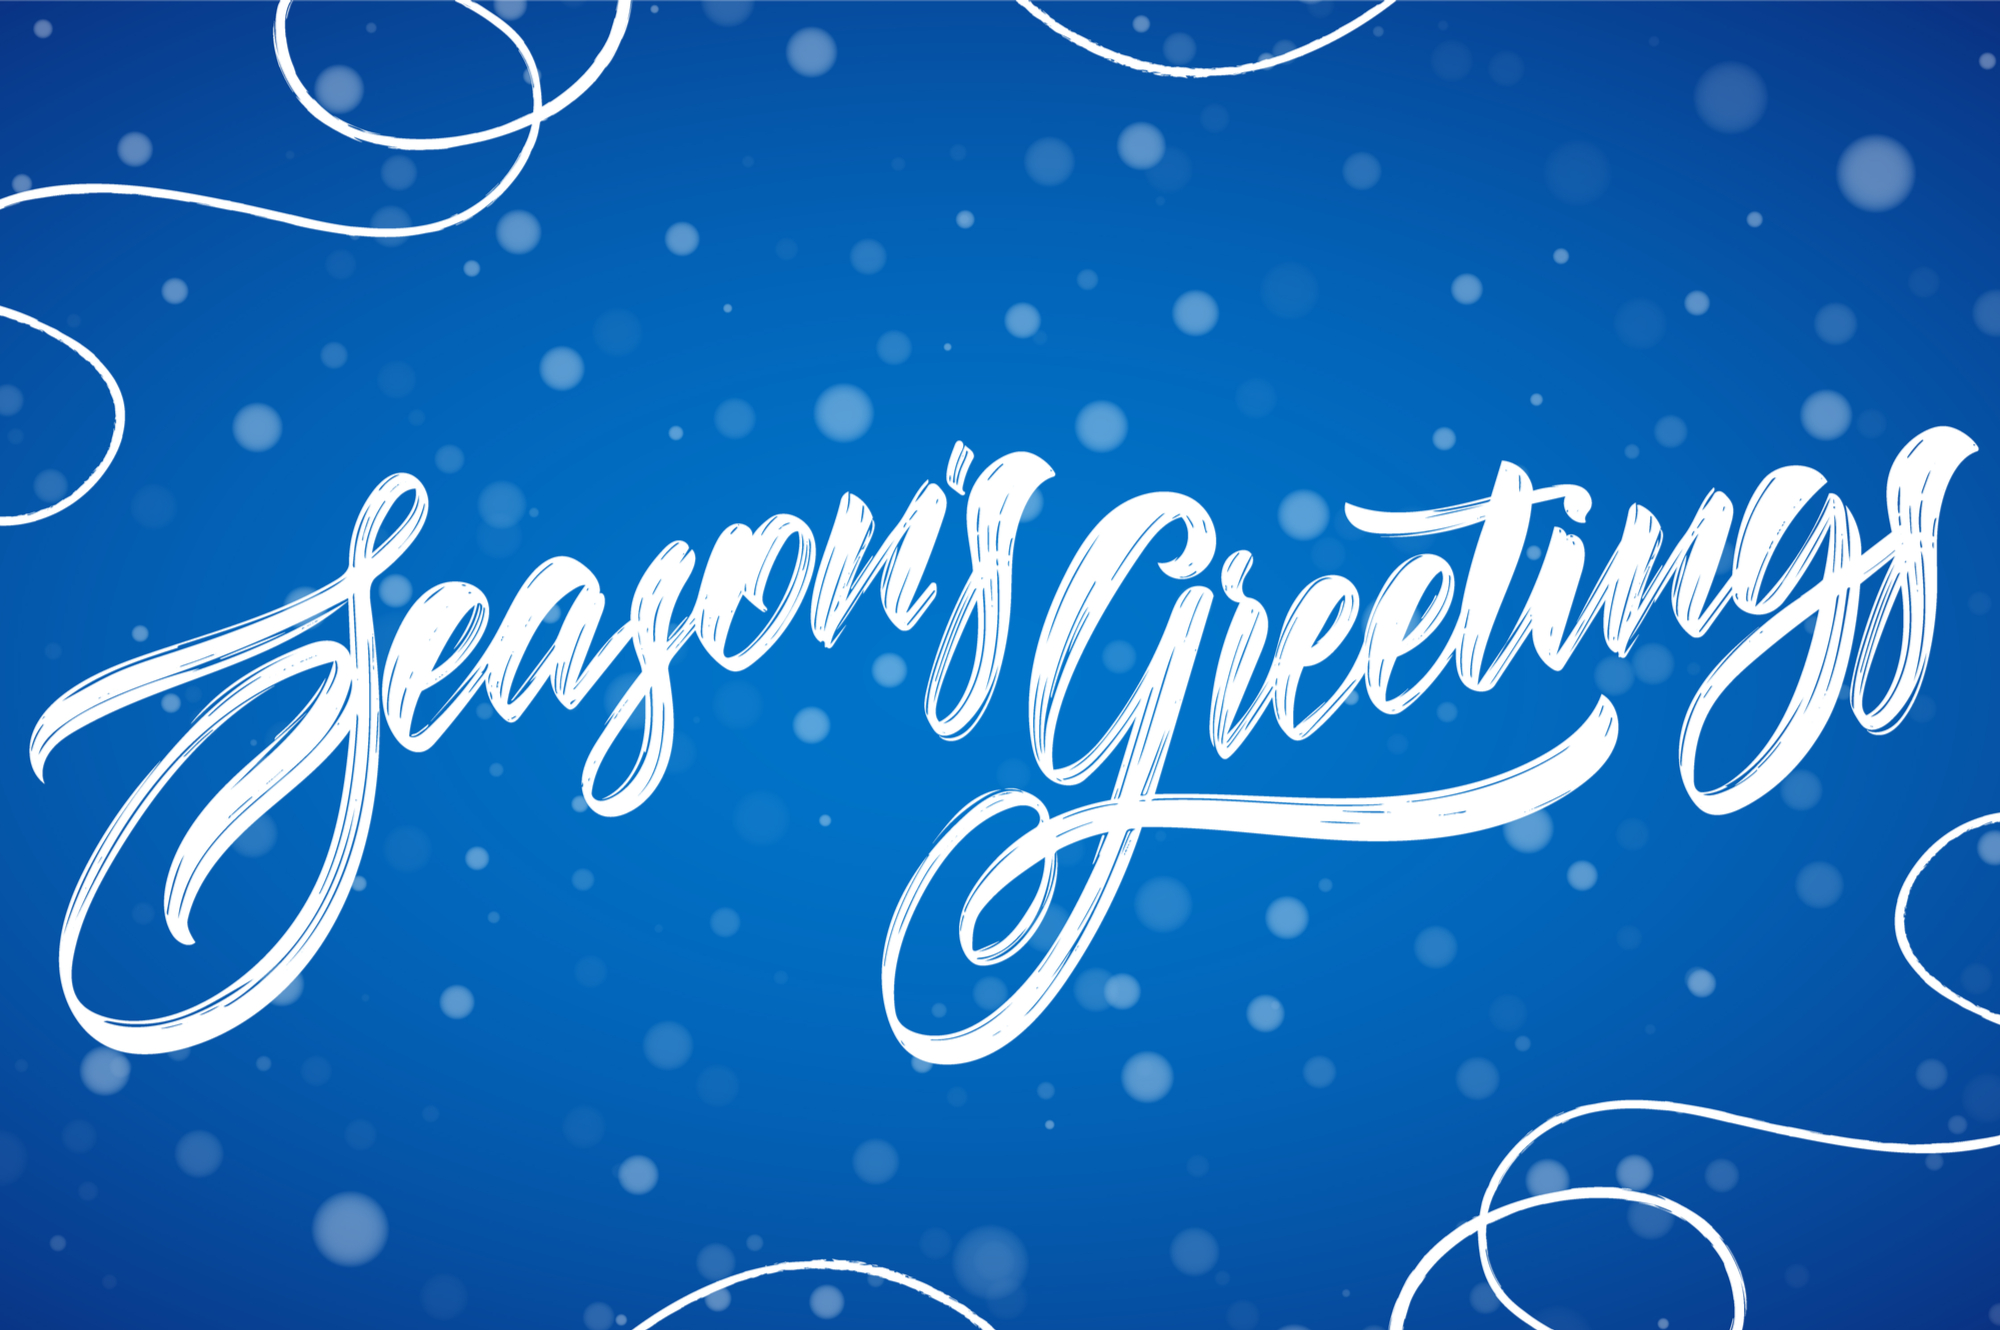 Seasons Greetings from JTL